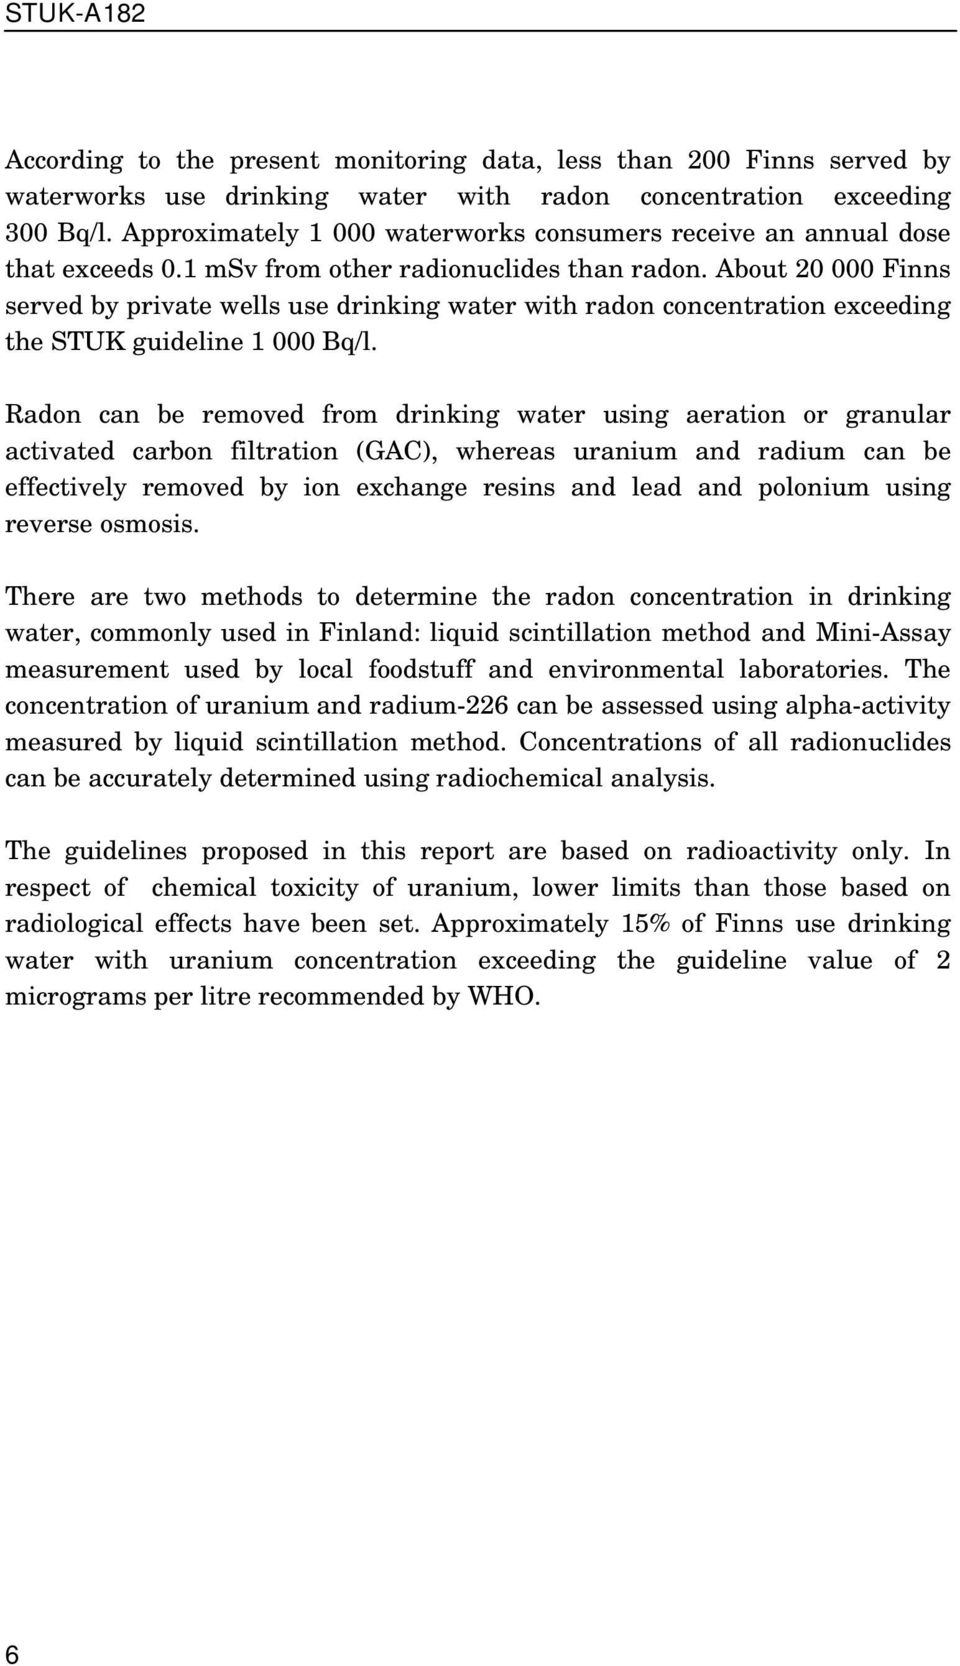 About 20 000 Finns served by private wells use drinking water with radon concentration exceeding the STUK guideline 1 000 Bq/l.